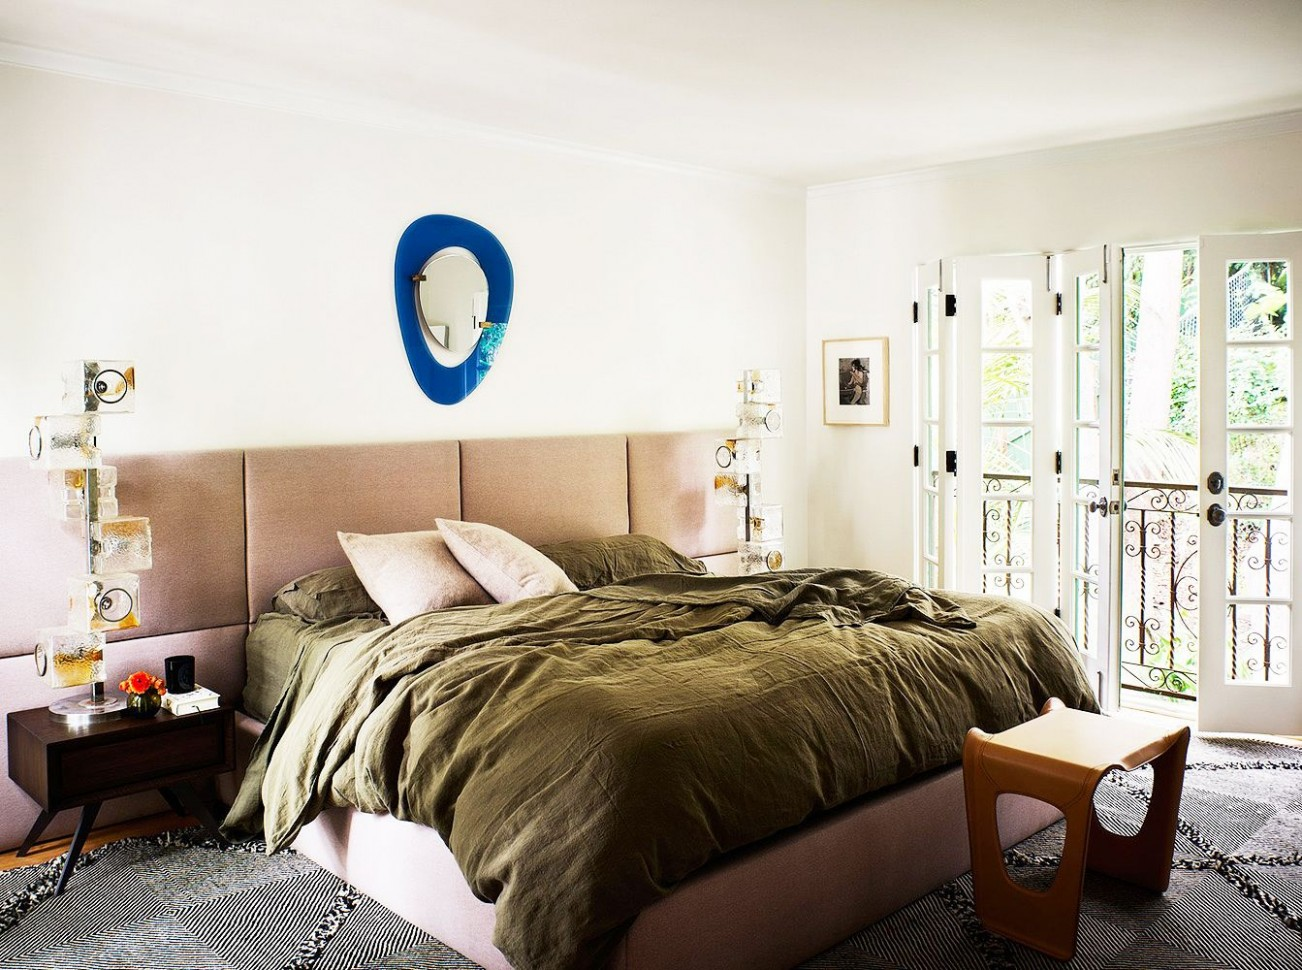 11 Stylish Bedroom Design Ideas - Modern Bedrooms Decorating Tips - Bedroom Ideas Images